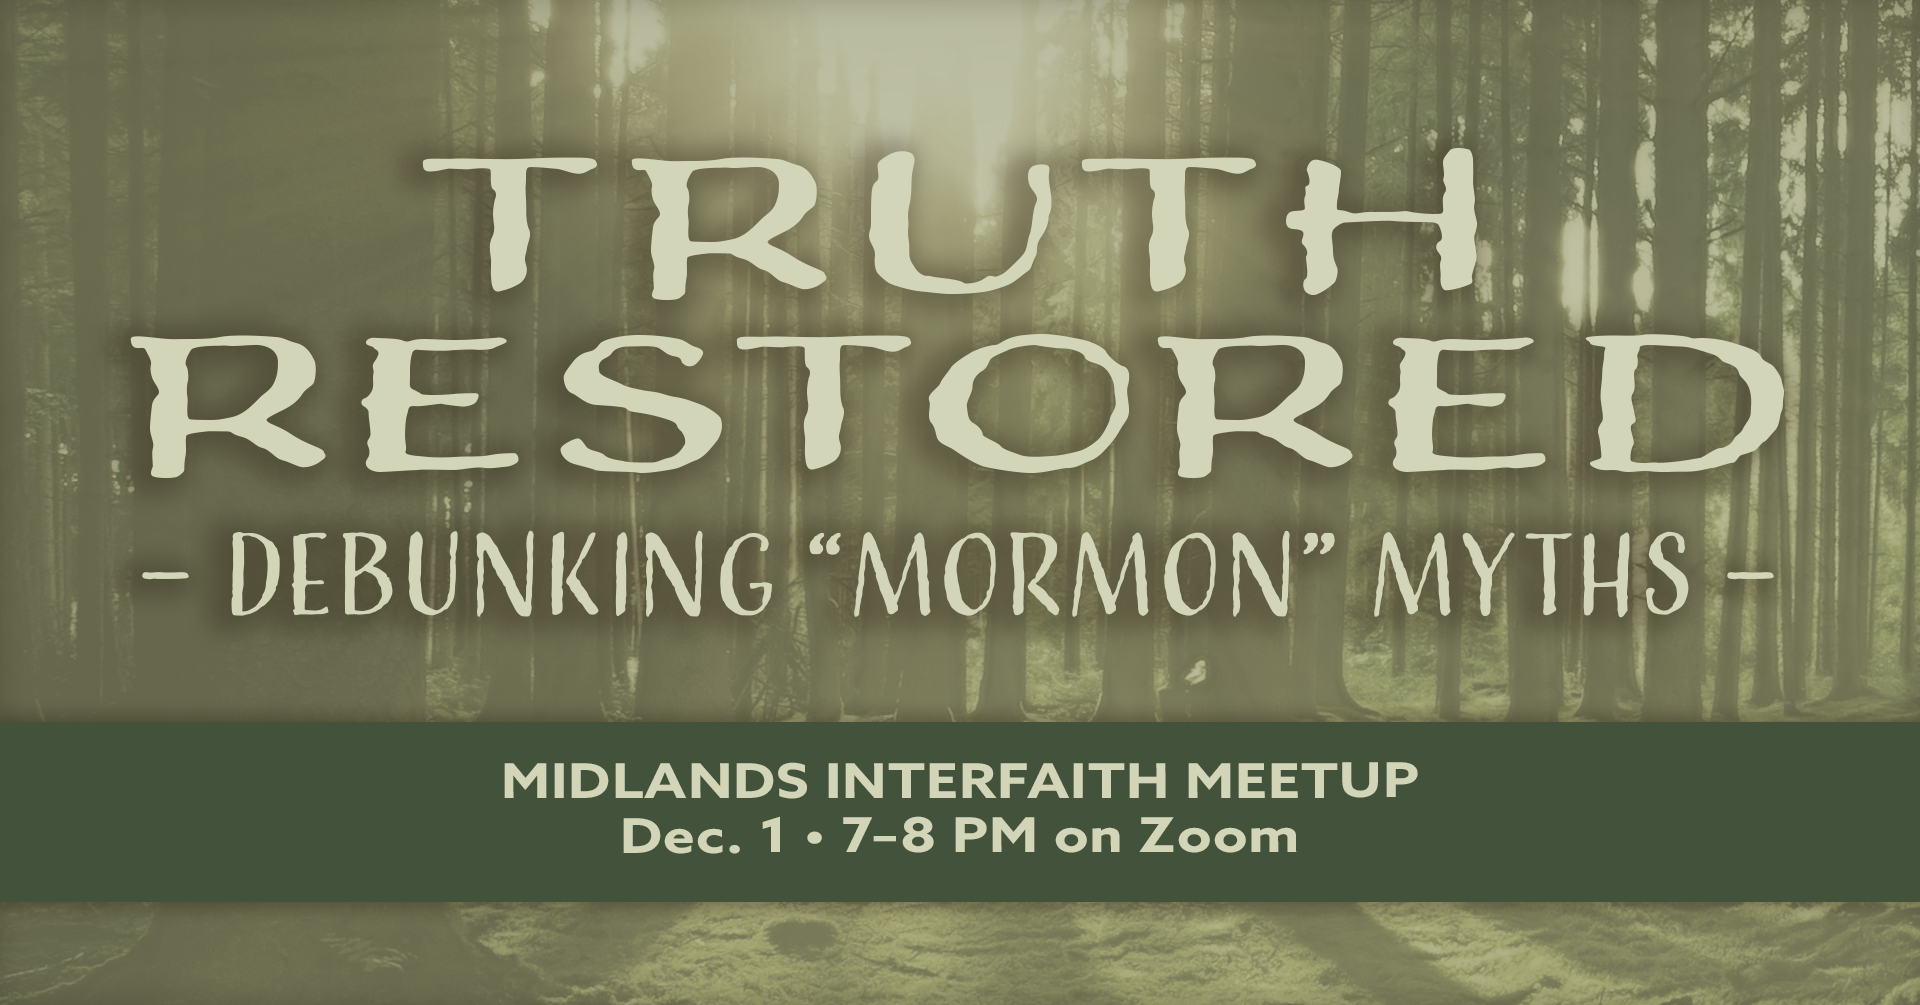 "A monochromatic green and white forest image with light filtering through the trees. Text reads, ""Truth Restored: Debunking 'Mormon' Myths. Midlands Interfaith Meetup. Dec. 1 7-8 PM on Zoom."